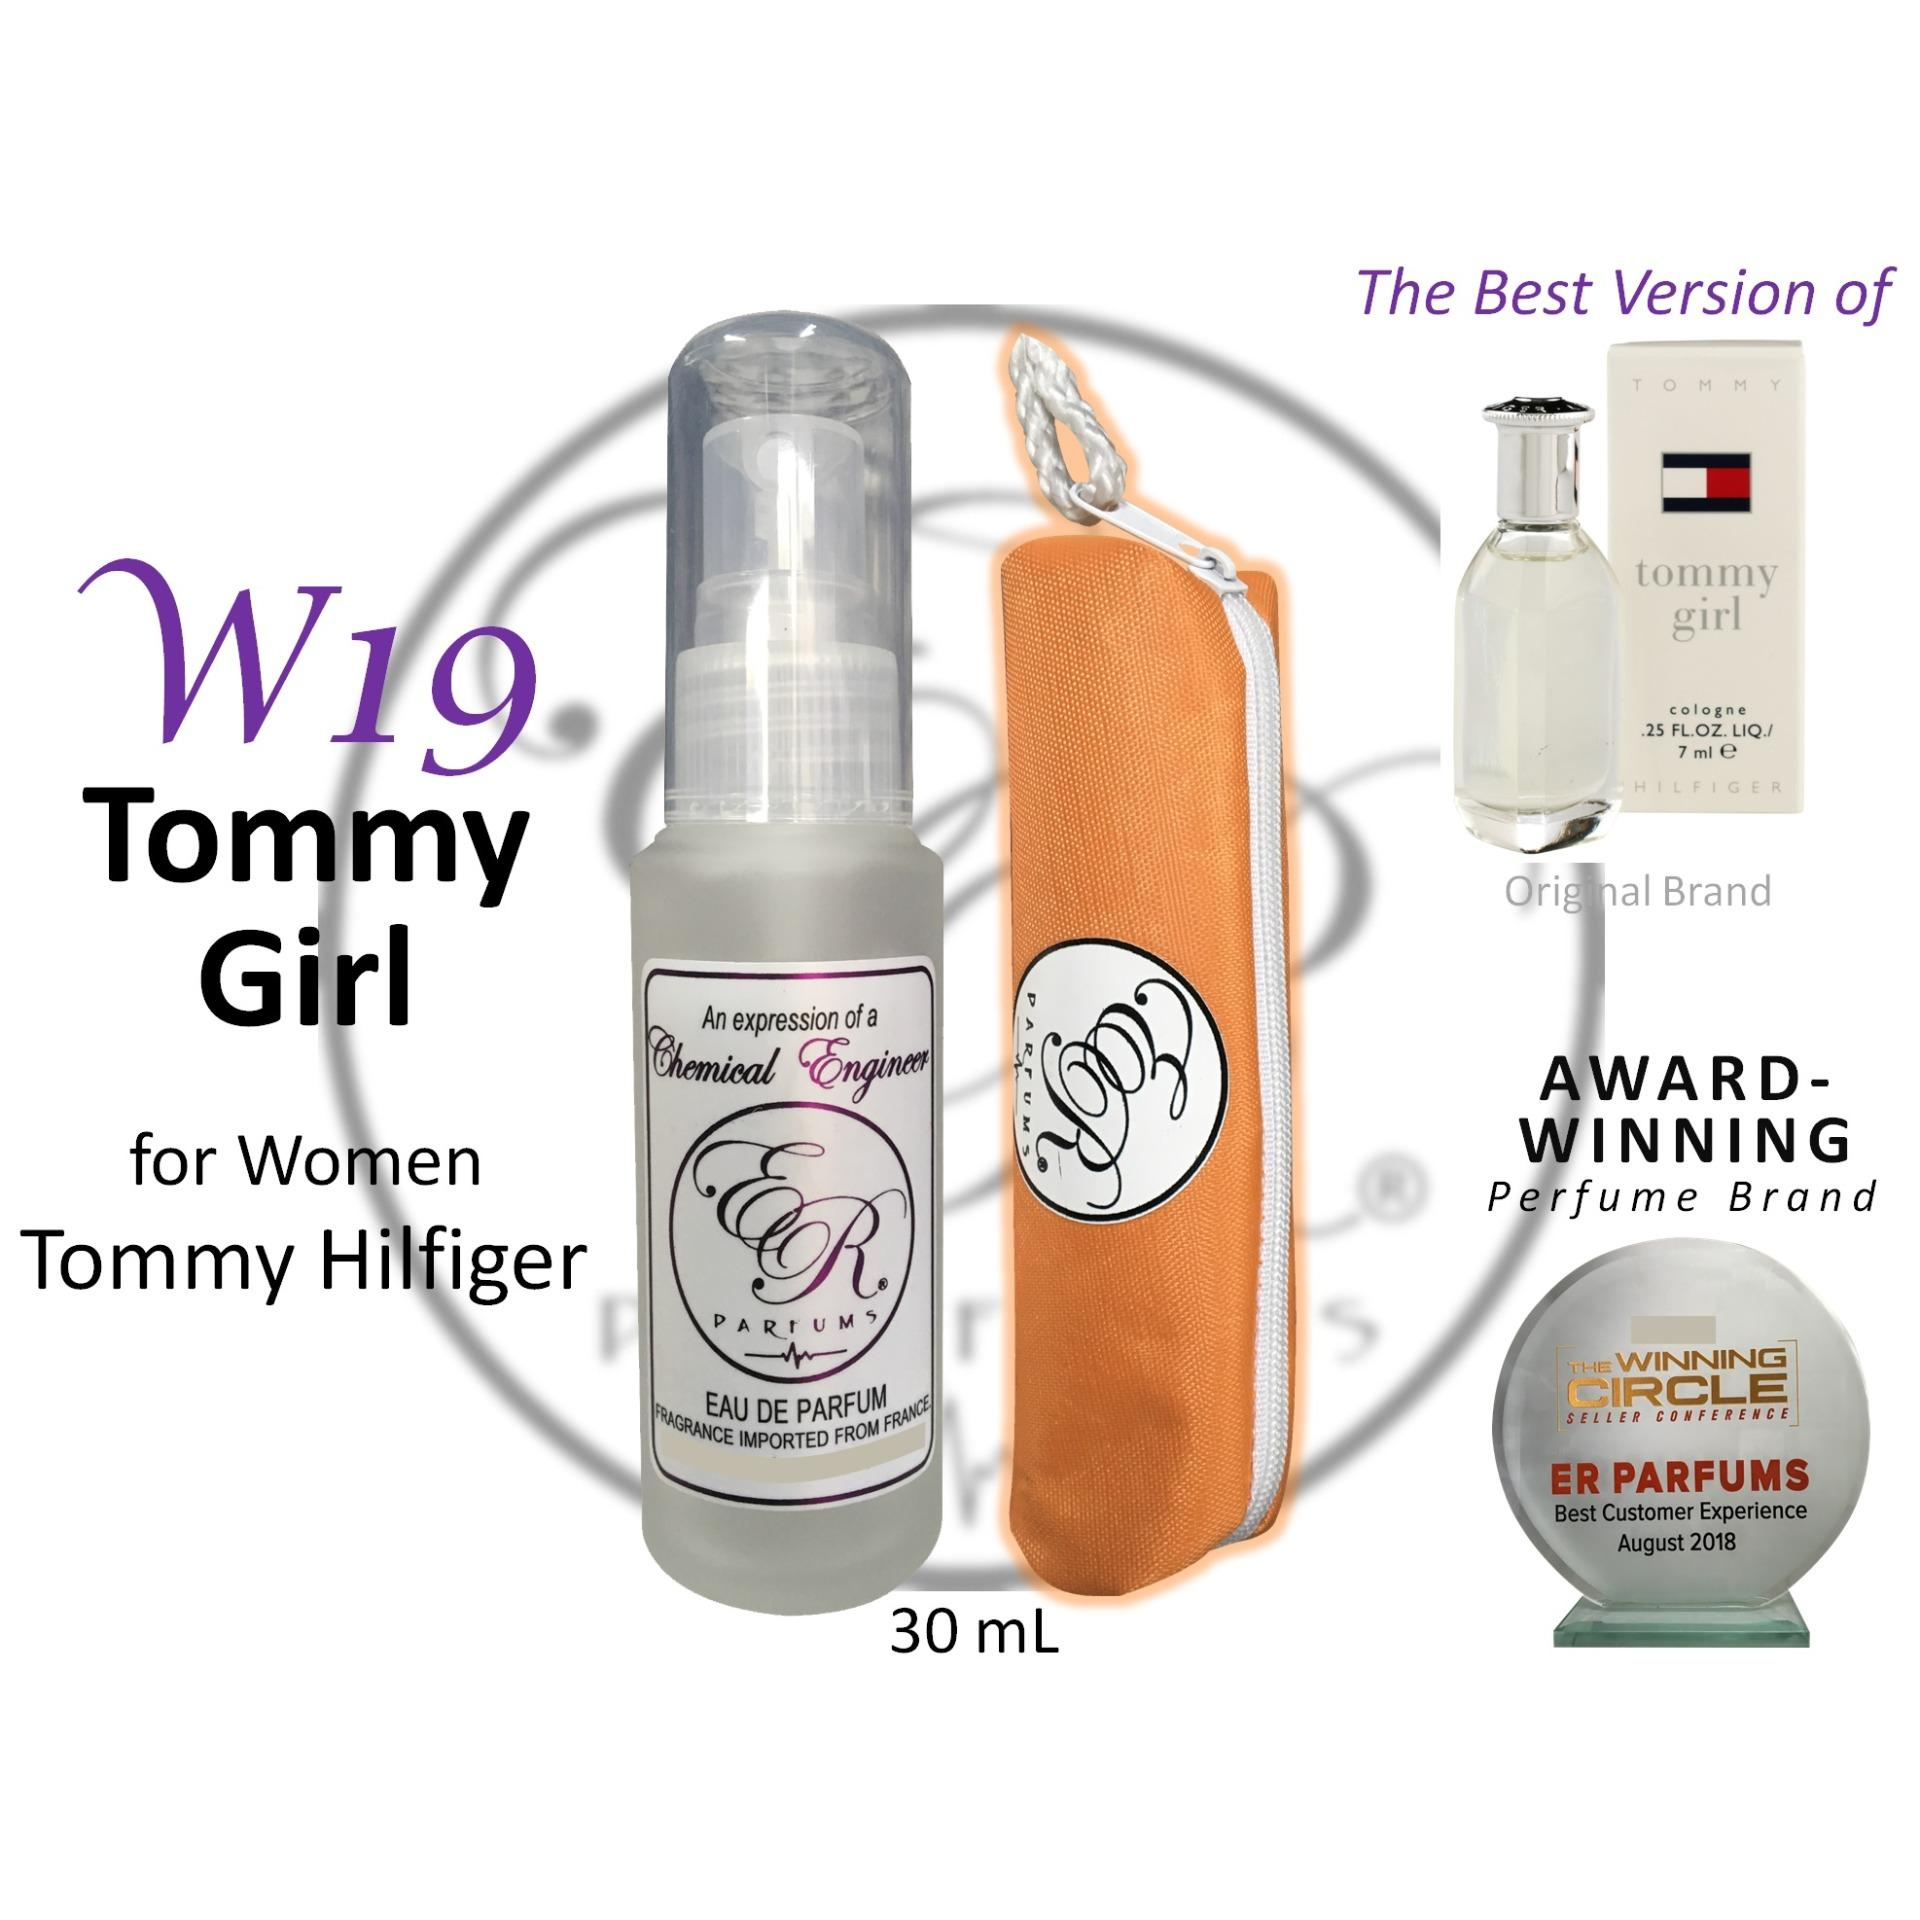 ER PARFUMS W19 Tommy Girl for Women by Tommy Hilfiger 1 piece 30 mL perfume with free pouch - BEST VERSION